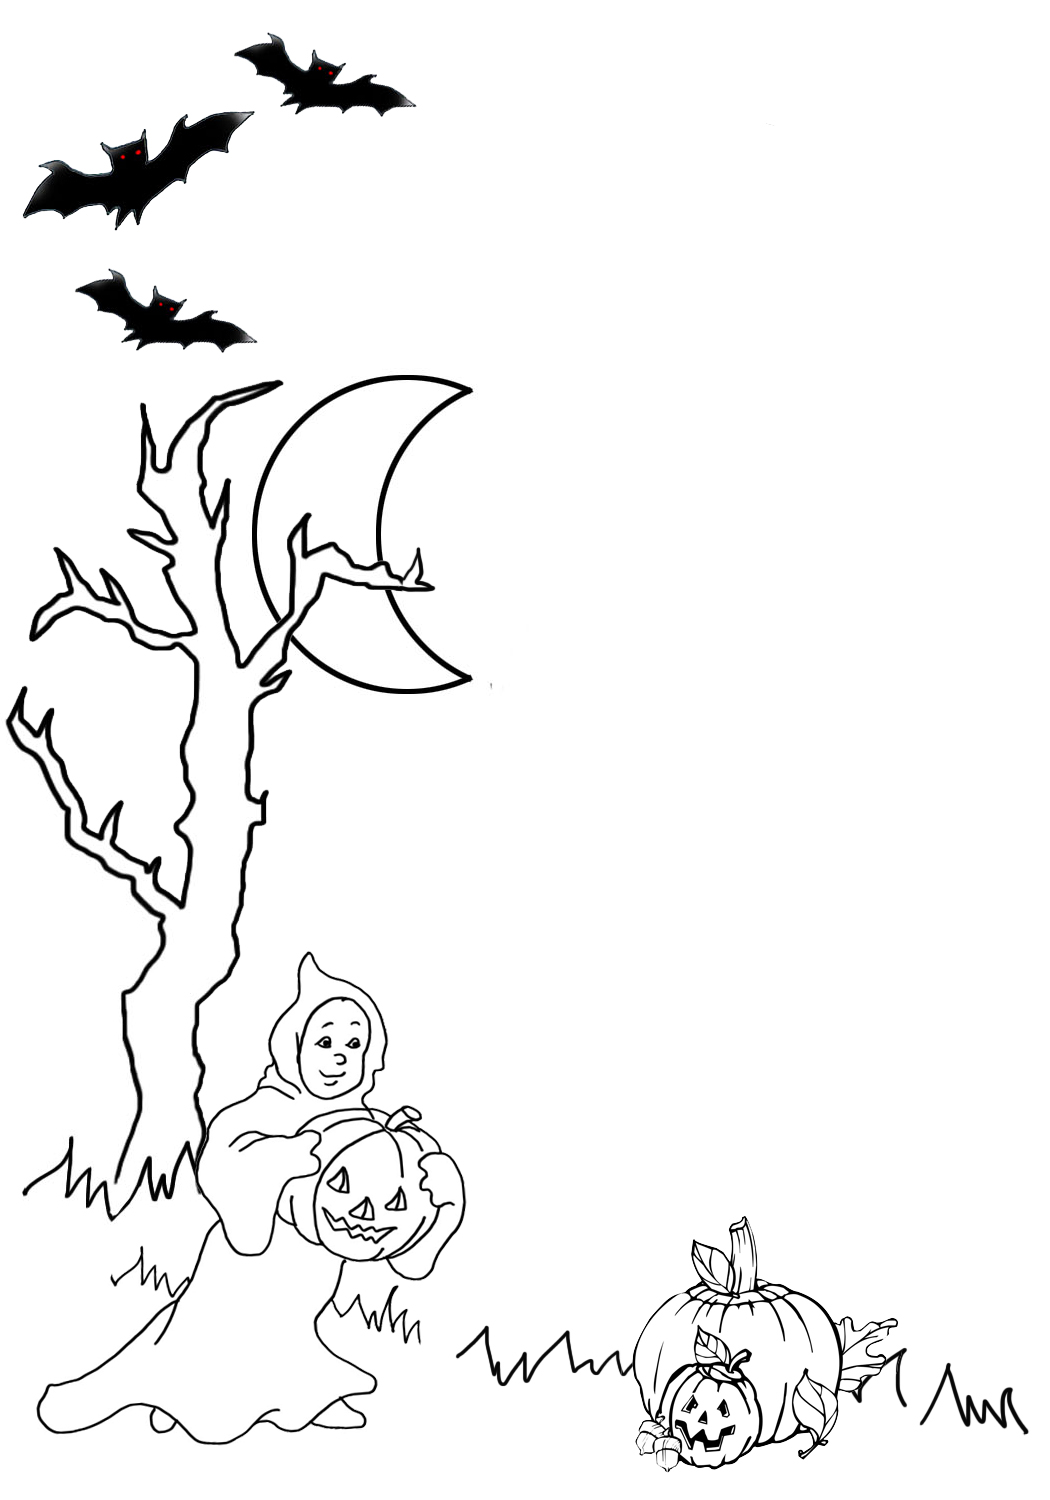 Cute Halloween frame with ghost pumpkin bat tree